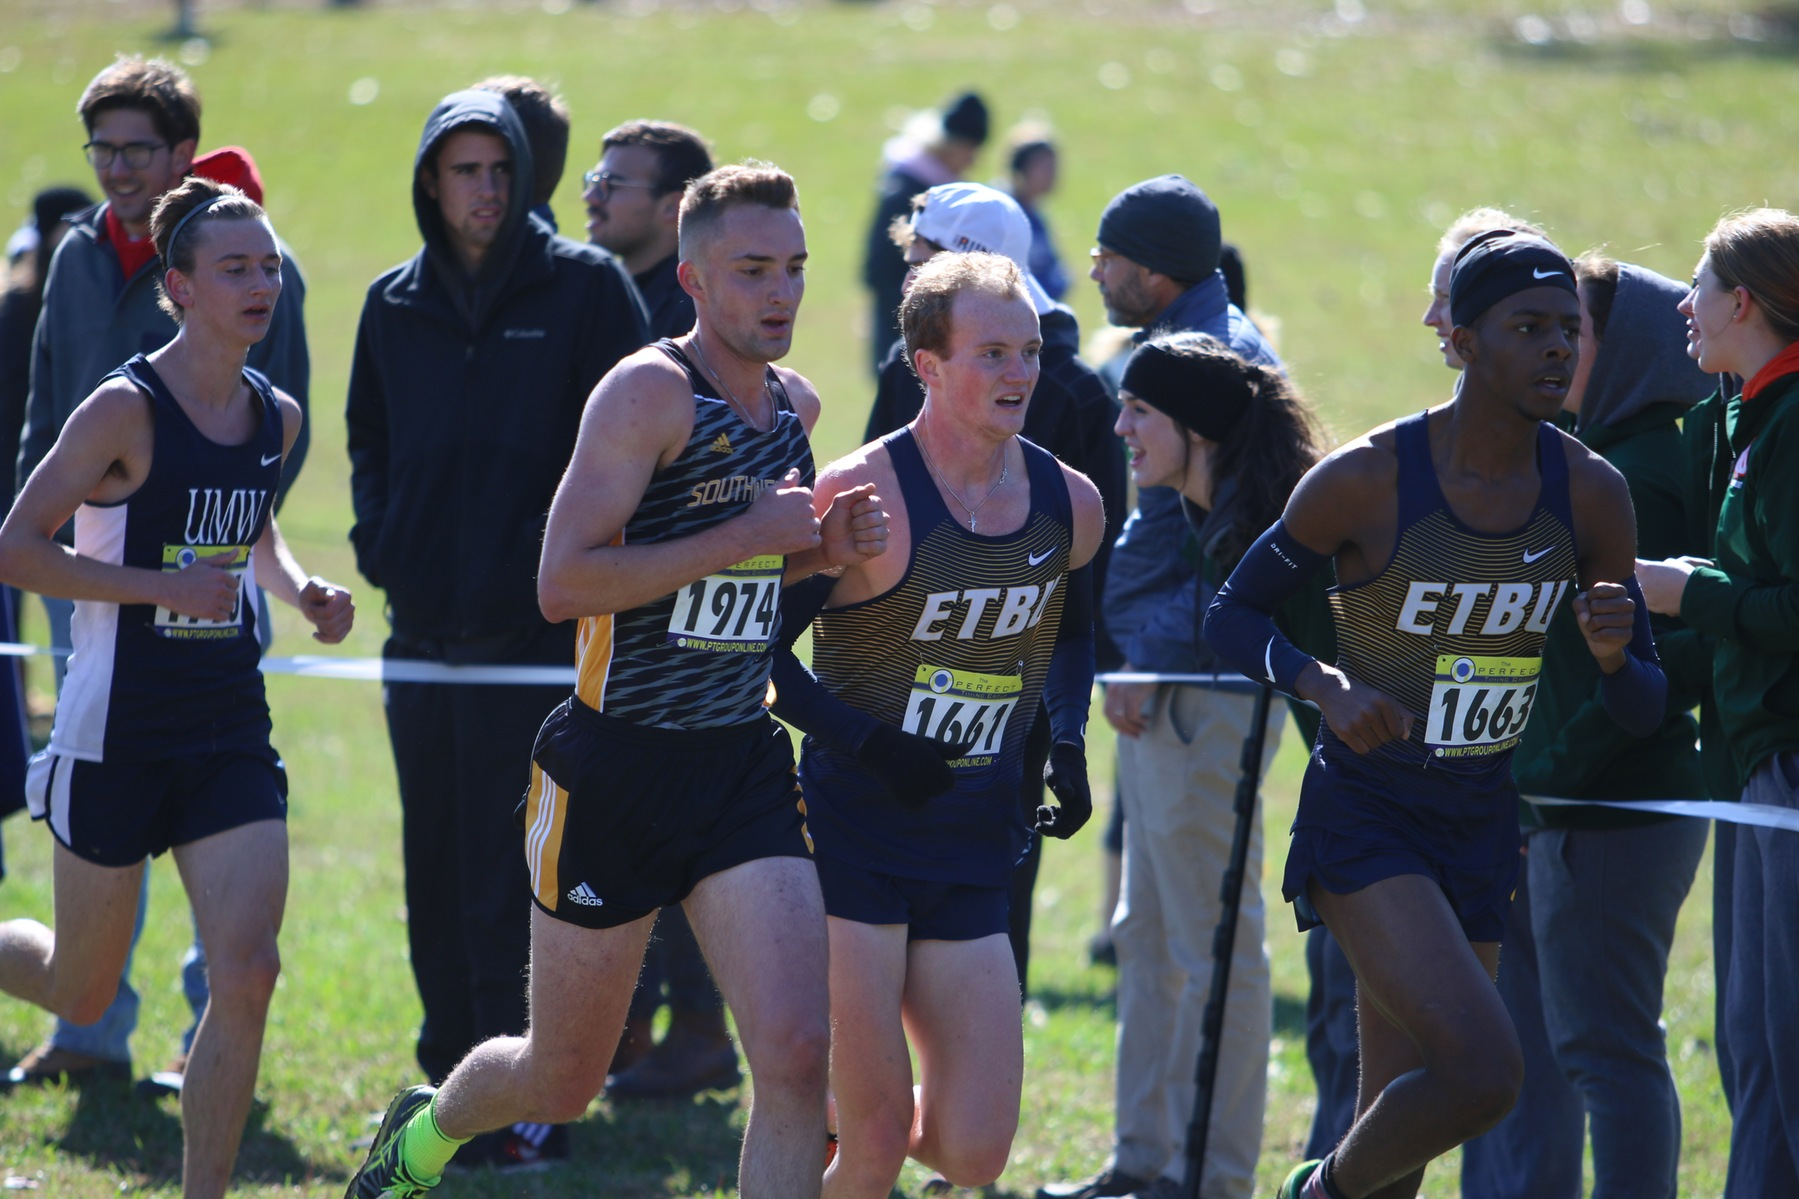 Men's Cross Country Finishes In The Top Half at NCAA Regional